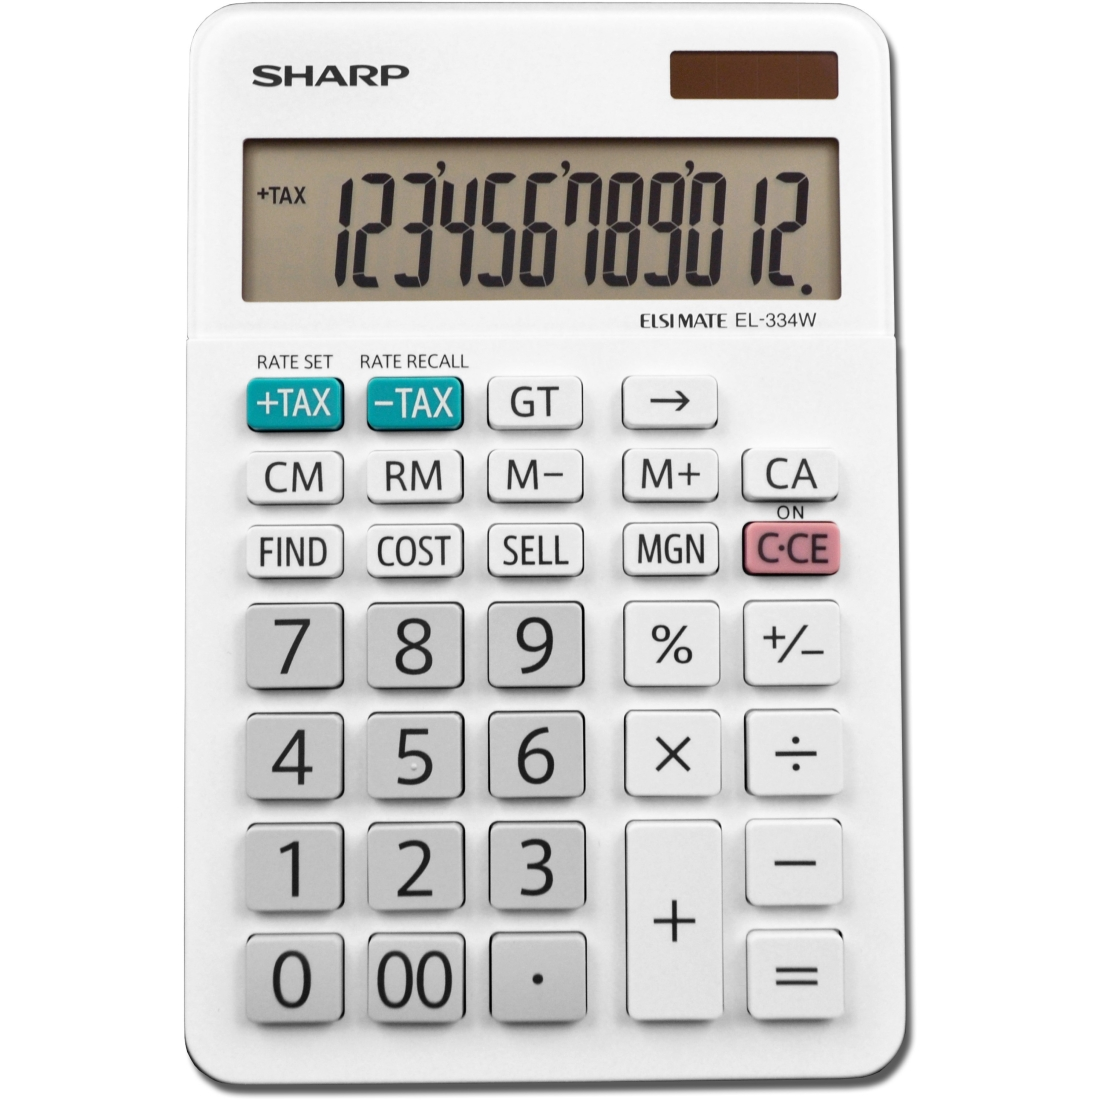 Sharp EL-334WB 12 Digit Professional Large Desktop Calculator with Kick Stand Display